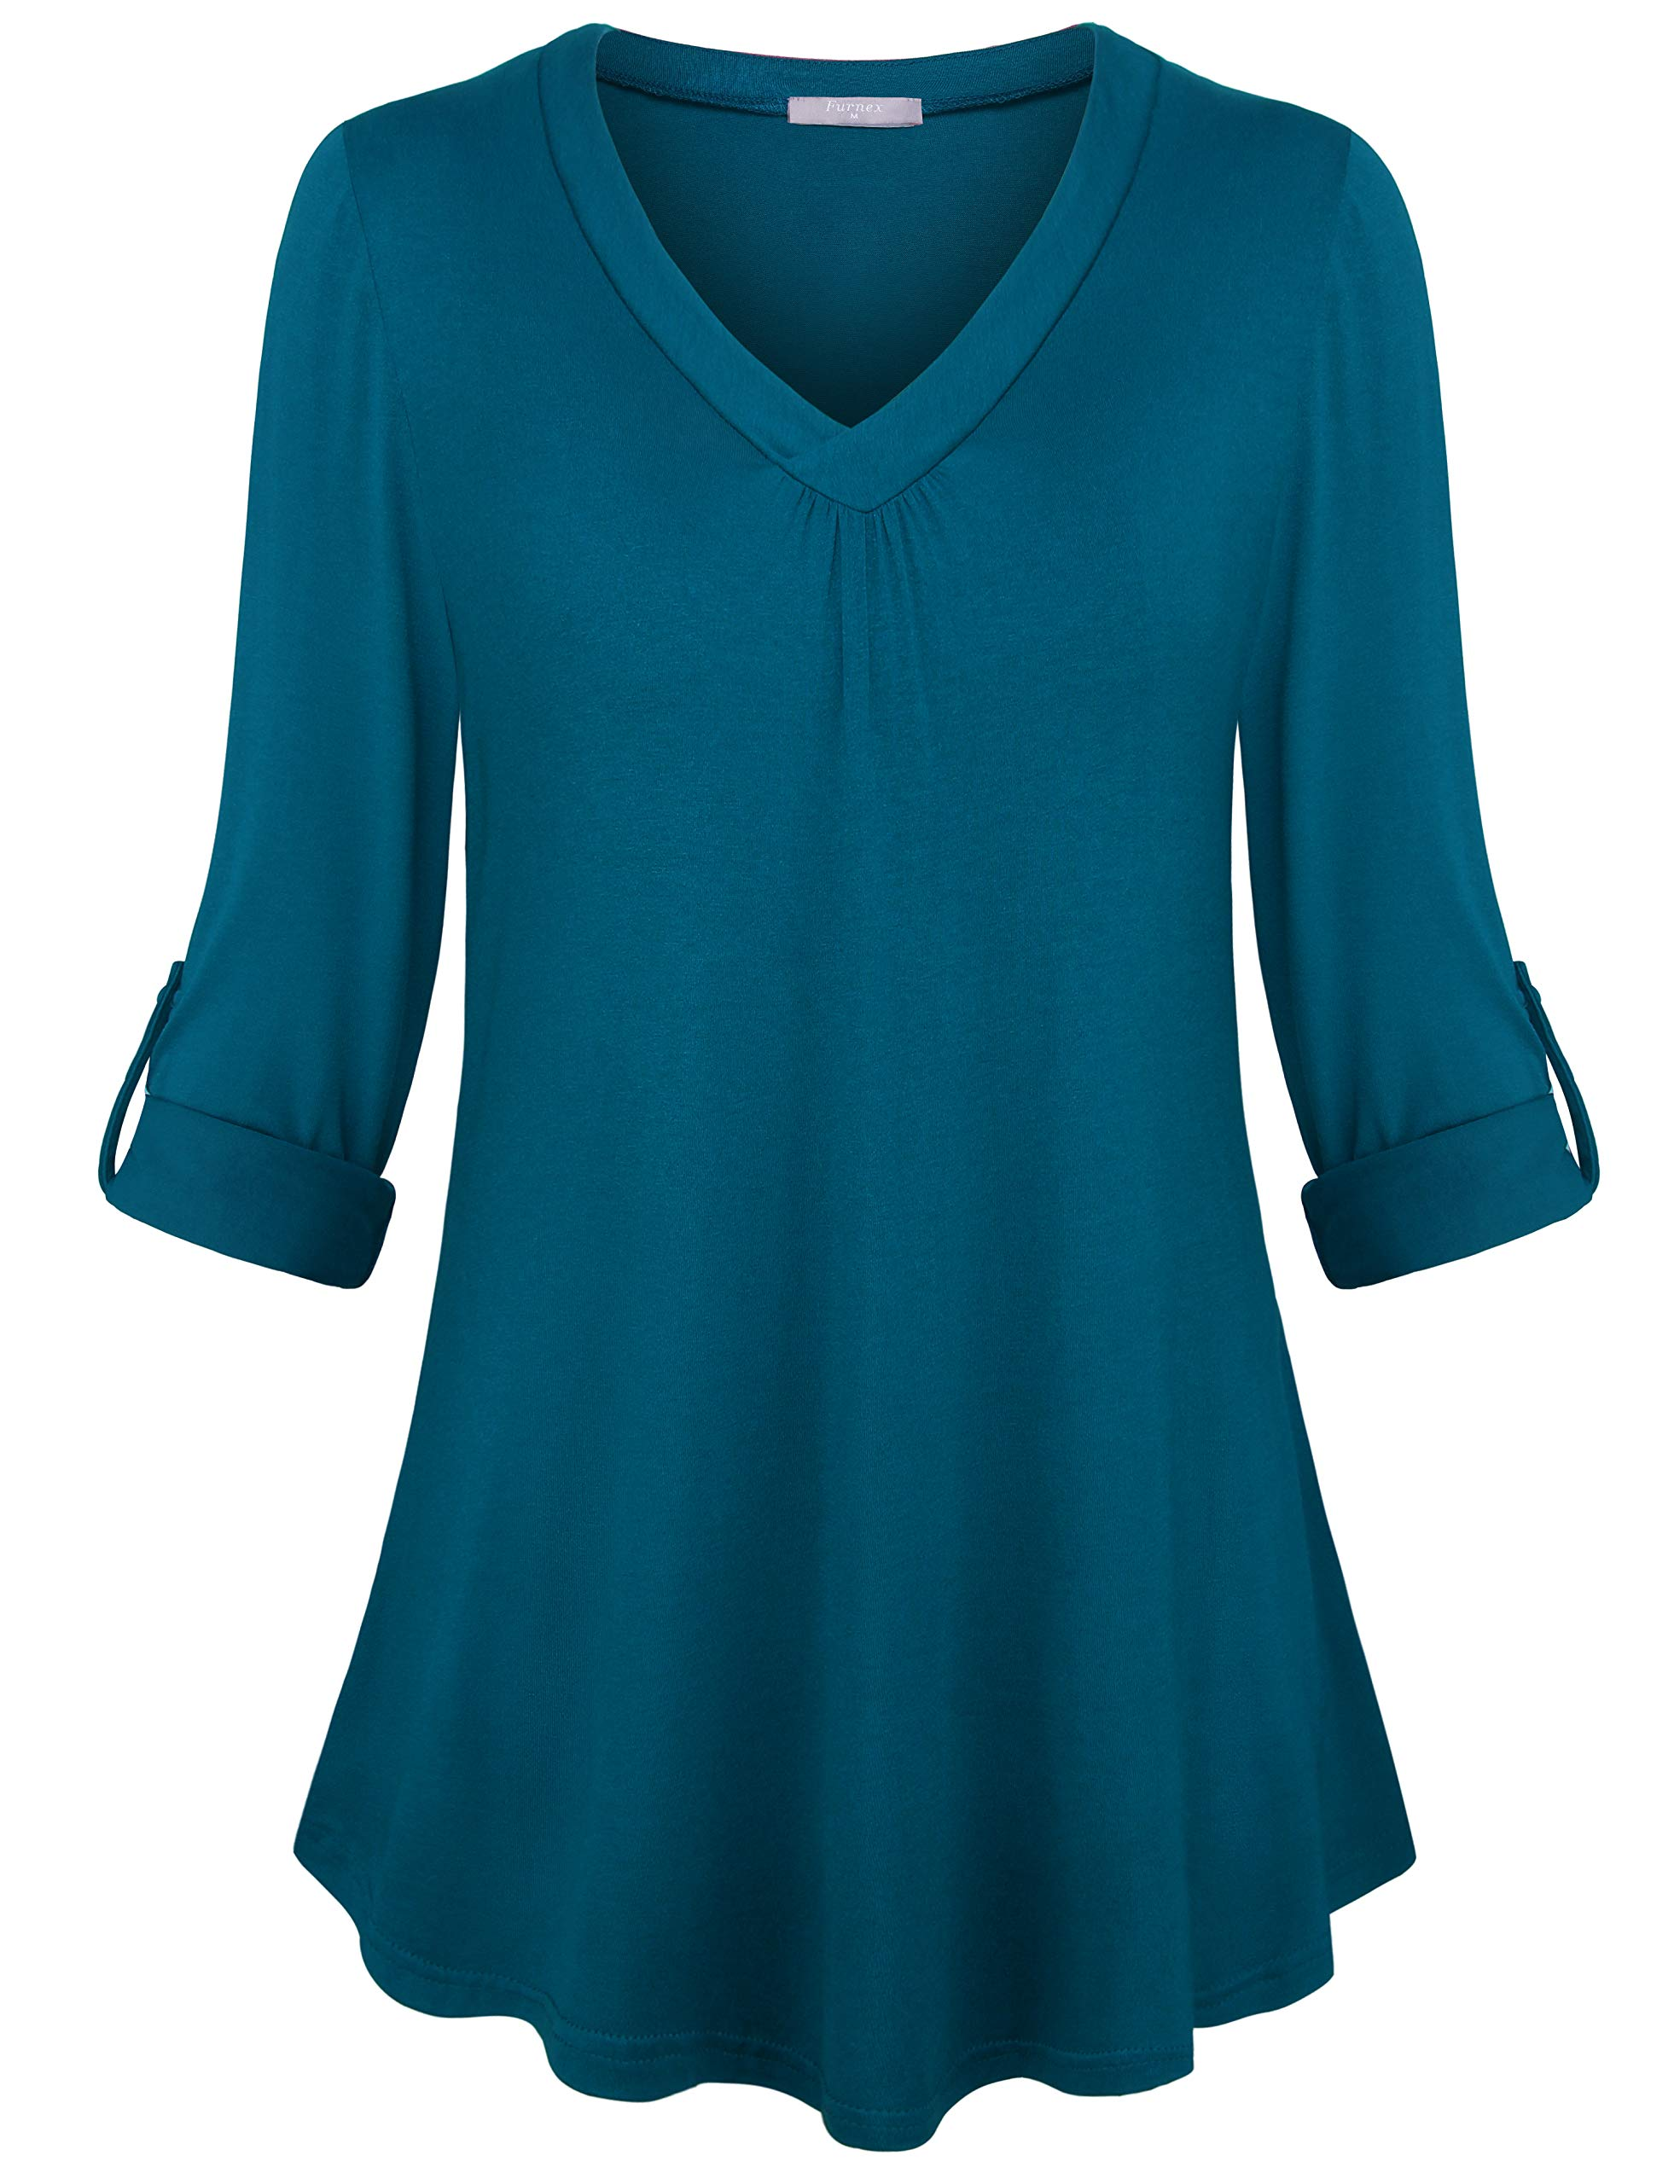 Furnex V Neck Tunic Tops for Women, Tunic Tops 3/4 Sleeve Casual Lightweight Shirt Loose Comfy Fit Stretchy Blouse Top for Legging Deep Cyan Medium